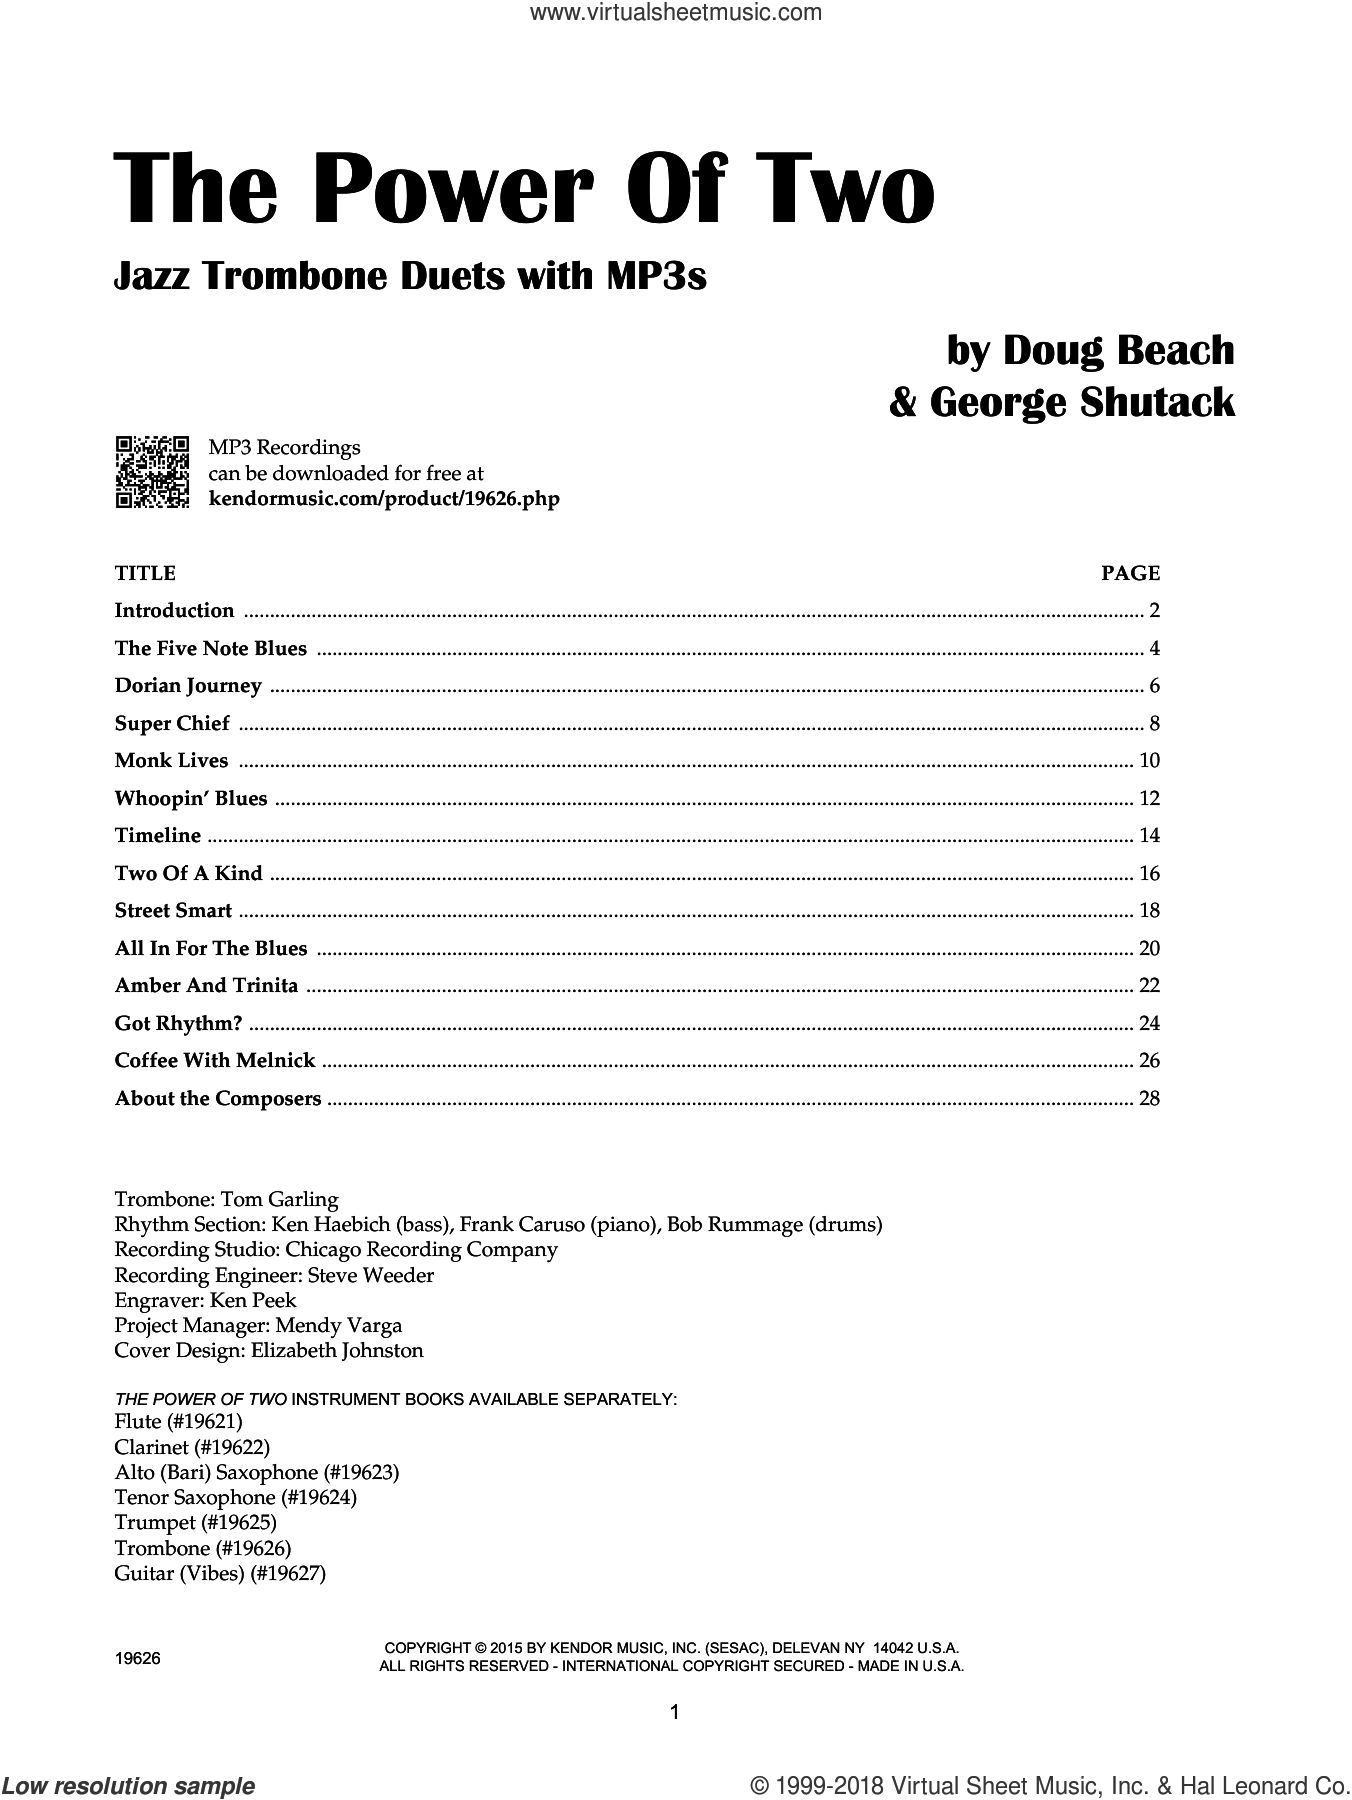 The Power Of Two - Trombone sheet music for two trombones by Doug Beach and George Shutack, intermediate duet. Score Image Preview.